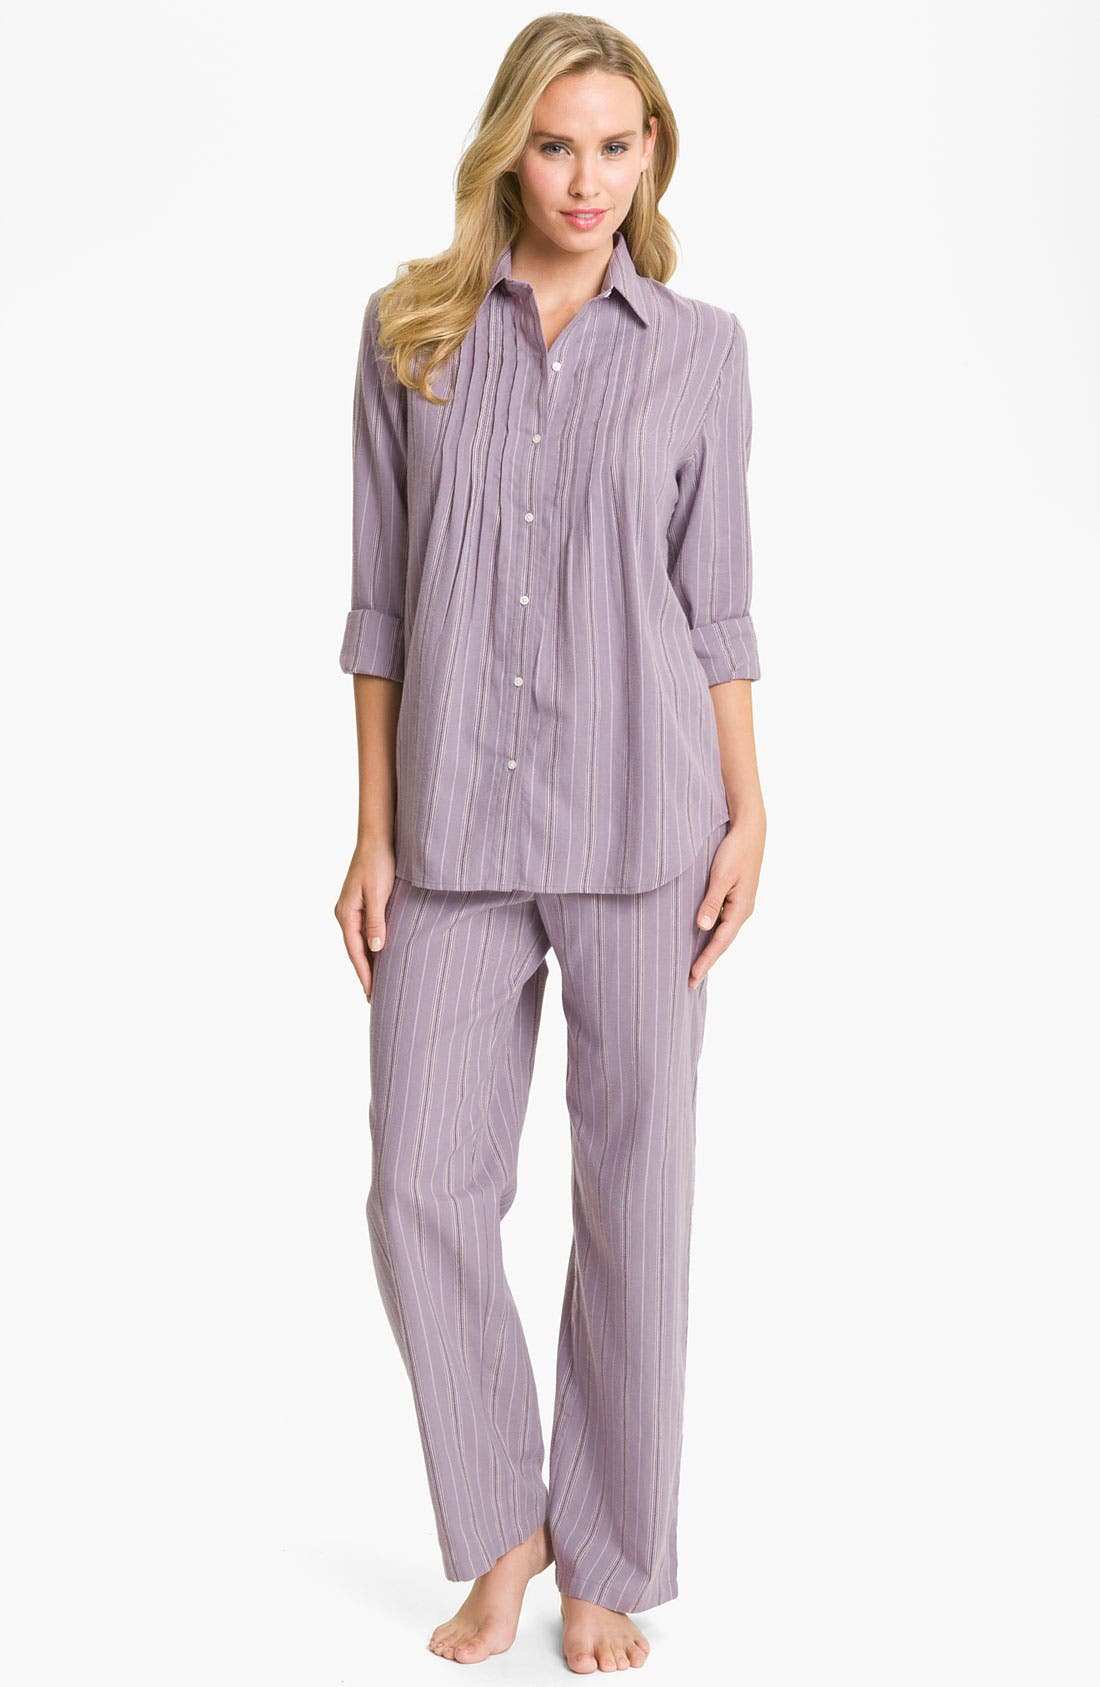 Main Image - Lauren Ralph Lauren Sleepwear Brushed Twill Pajamas